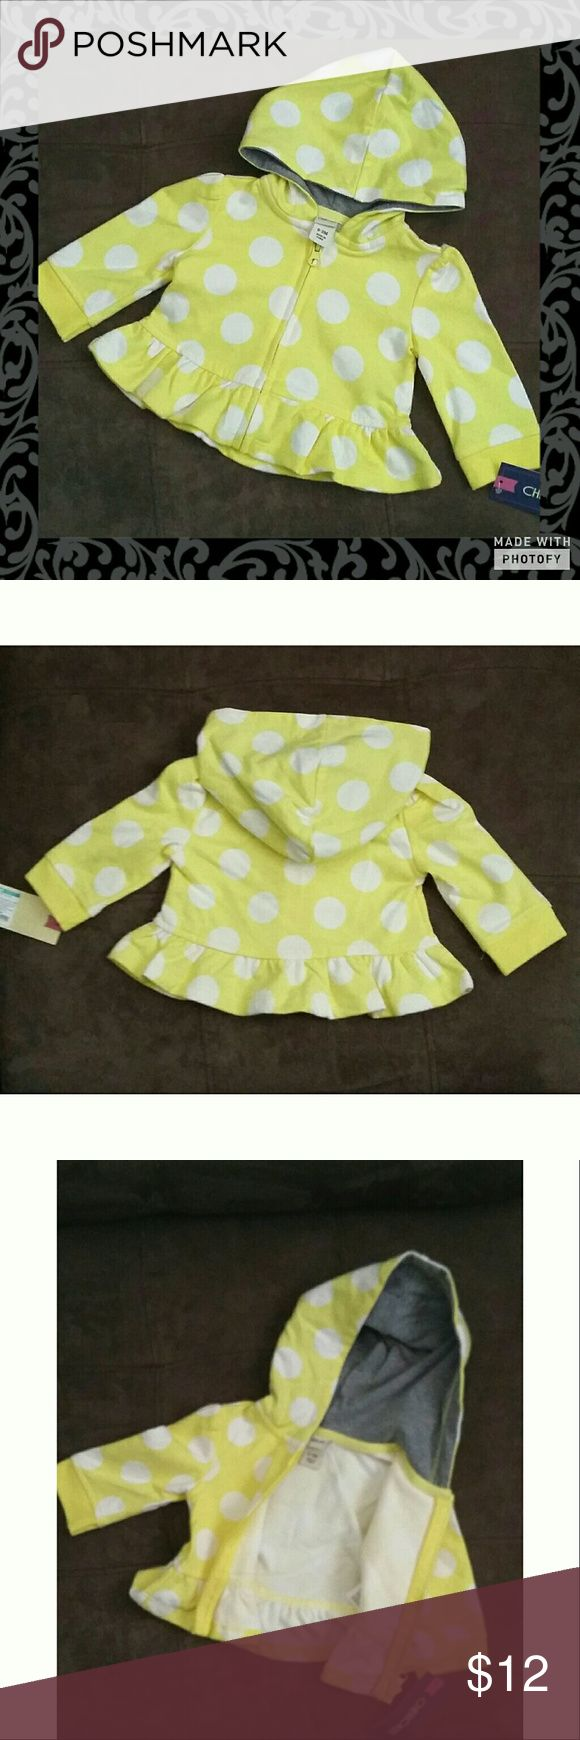 Yellow Polka Dot Zip Up Hooded Sweater Yellow Polka Dot Zip Up Hooded 0 to 3 month sweater. New with tags. 100% cotton. Light cute sweater perfect for spring time. Ruffled bottom. Cherokee Shirts & Tops Sweatshirts & Hoodies